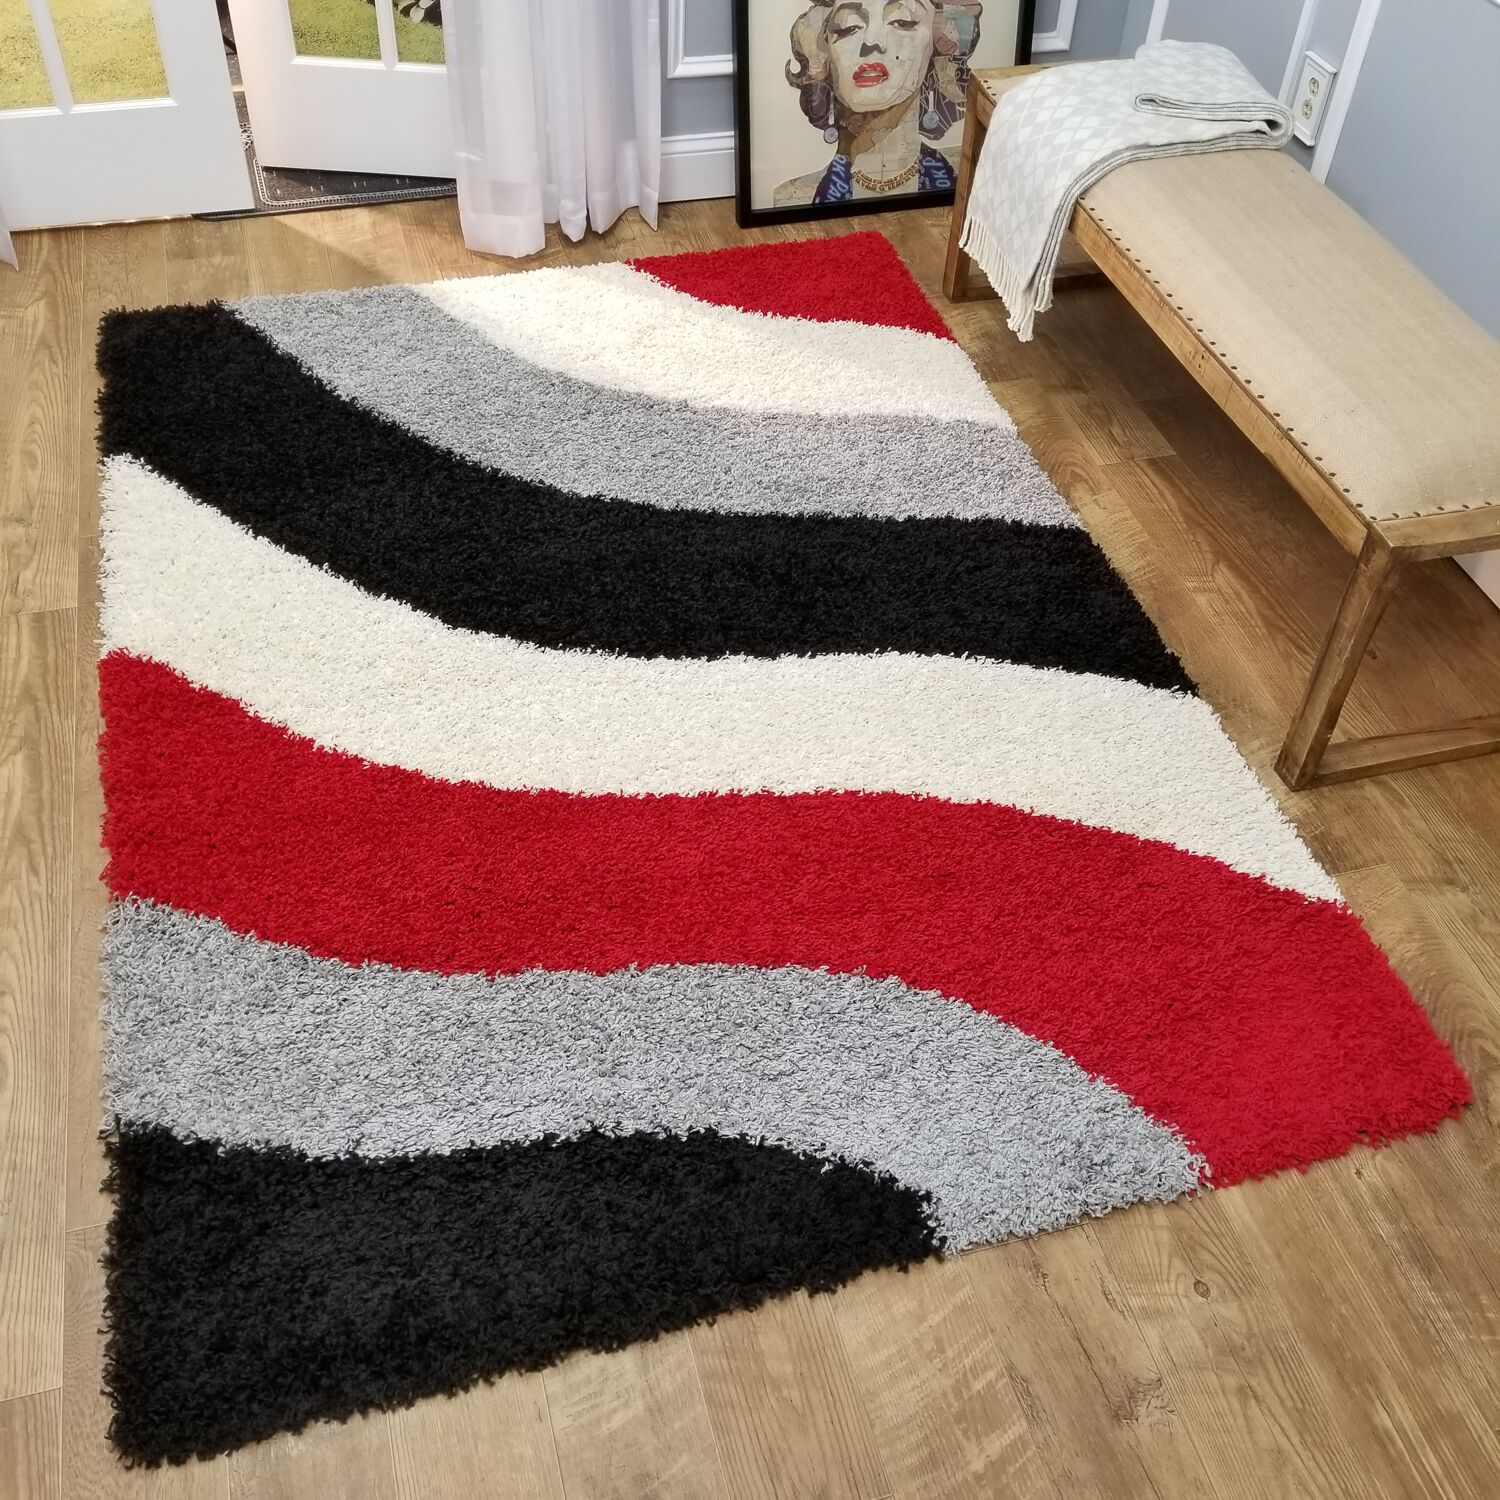 Burns Block Striped Waves Contemporary Shag Area Rug Rug Size: 6'7